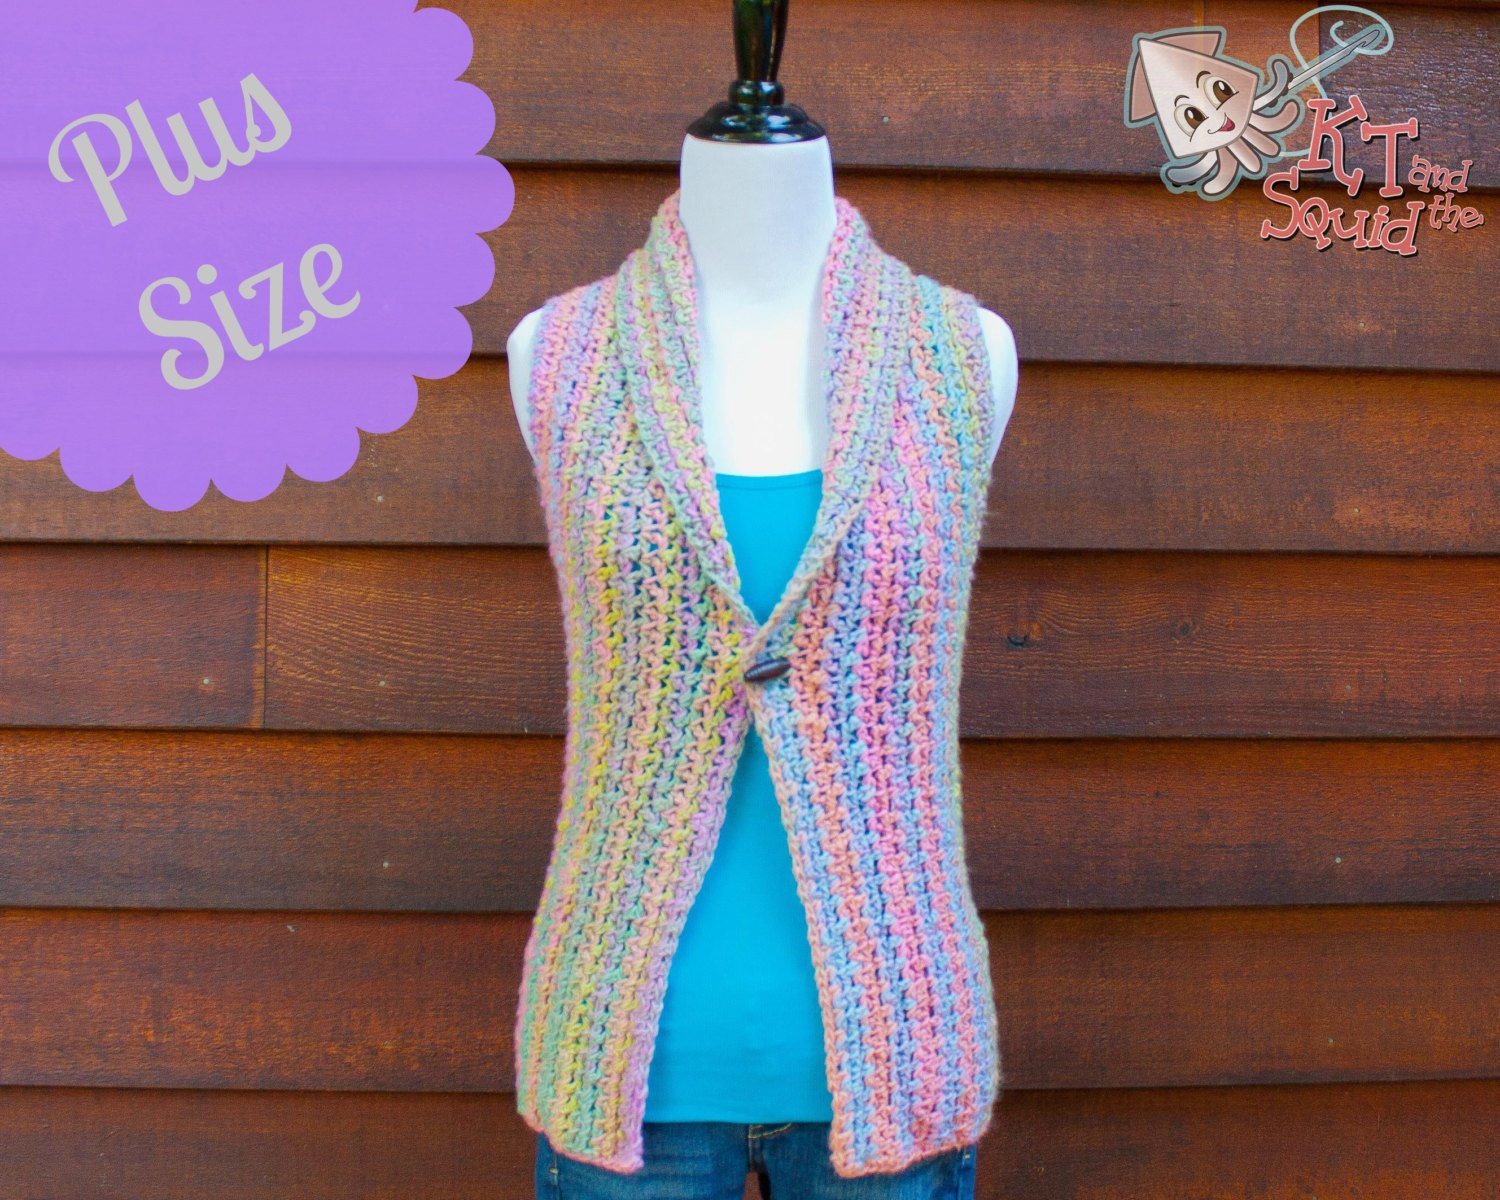 Plus Size Crochet Vest Luxury Crochet Pattern Womens Plus Size top Pattern Crochet Vest Of Fresh 49 Pics Plus Size Crochet Vest